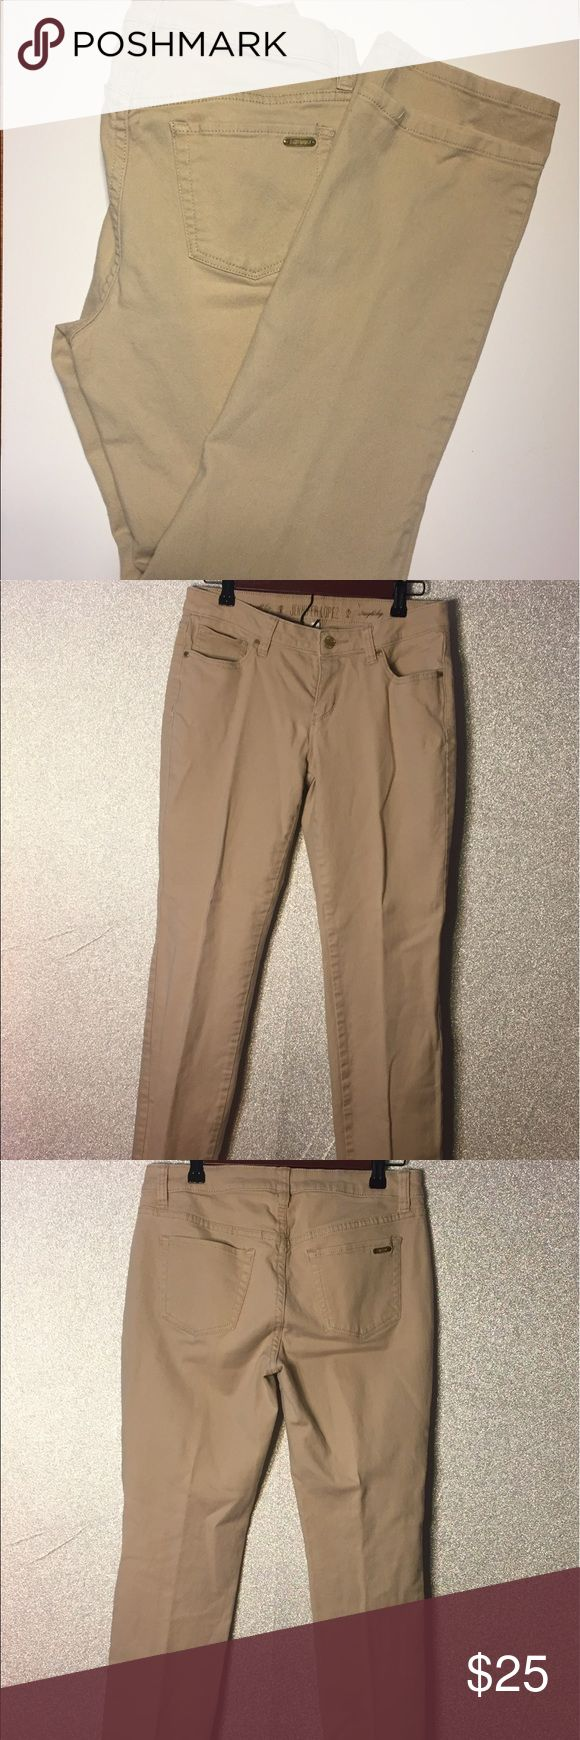 Jennifer Lopez beige straight leg jeans SZ 8 Jennifer Lopez beige straight leg jeans SZ 8 Preowned excellent condition no stains rips or holes Jennifer Lopez Jeans Straight Leg